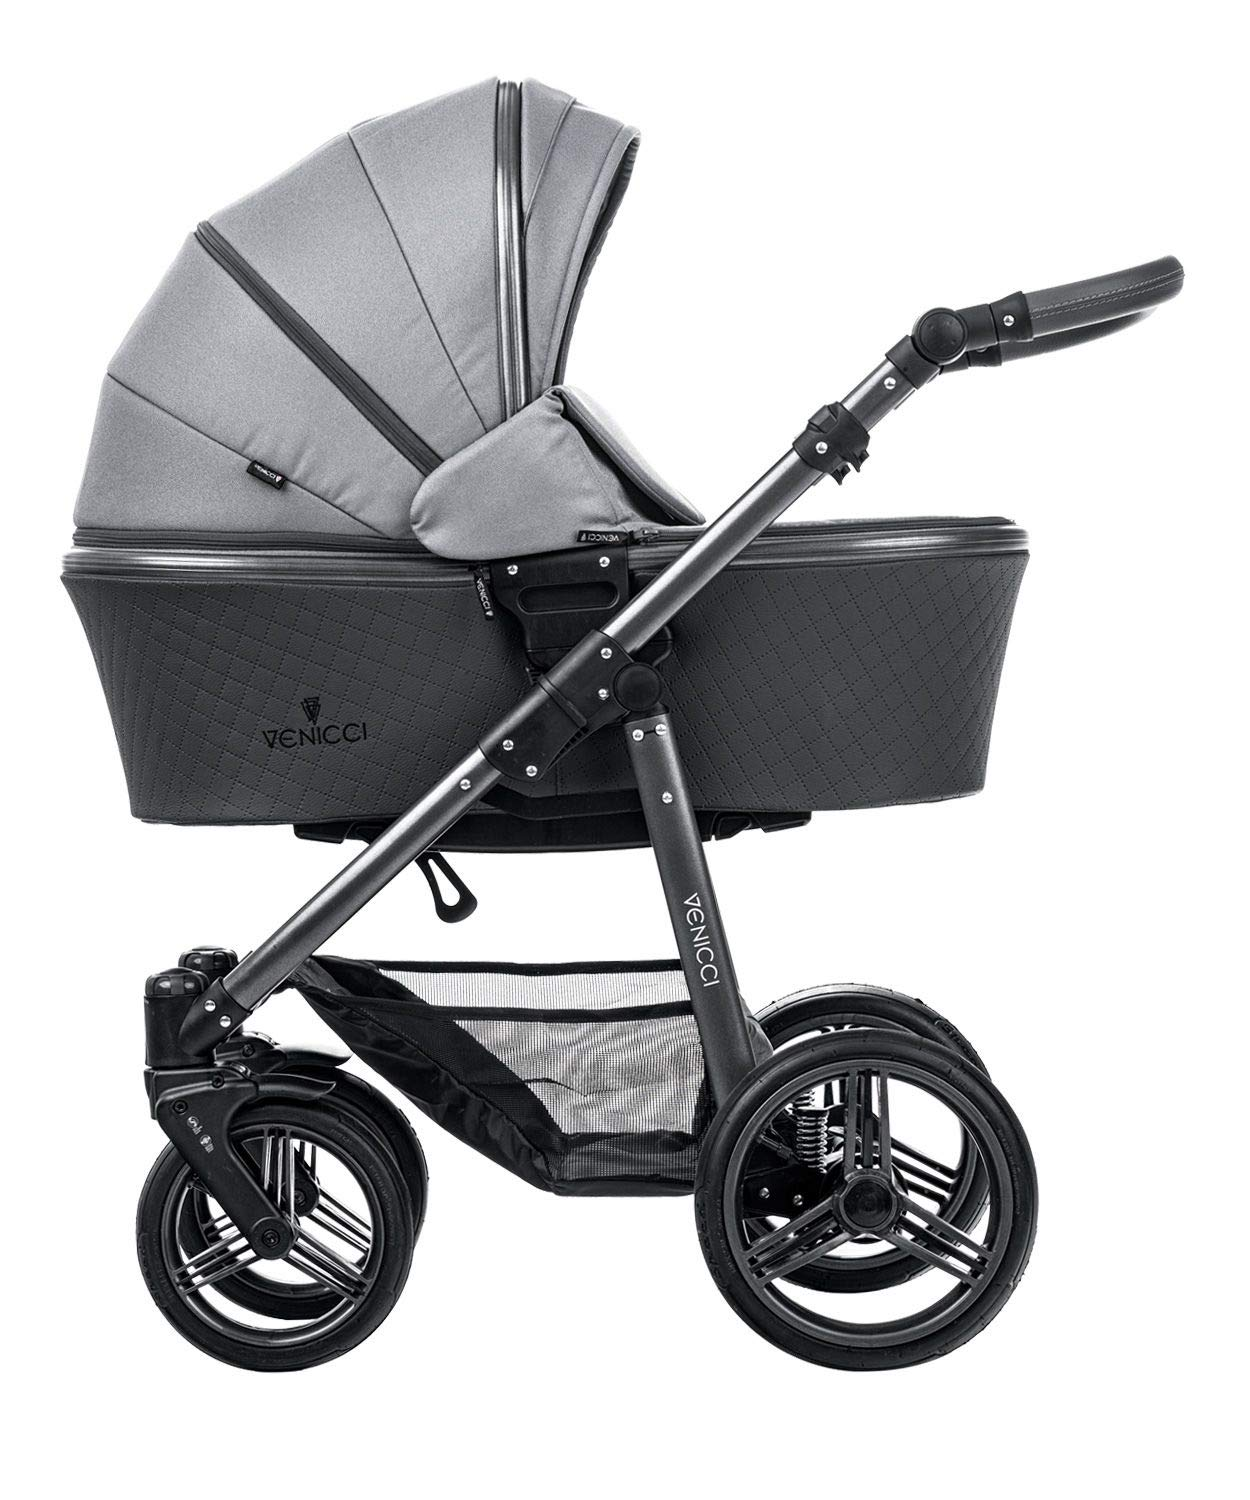 Venicci Carbo Lux 3-in-1 Travel System - Natural Grey - with Carrycot + Car Seat + Changing Bag + Apron + Raincover + Mosquito Net + 5-Point Harness and UV 50+ Fabric + Car Seat Adapters + Cup Holder Venicci 3 in 1 Travel System with included Group 0+ Car Seat 5-point harness to enhance the safety of your child Comfortable seat for baby with additional liners 2